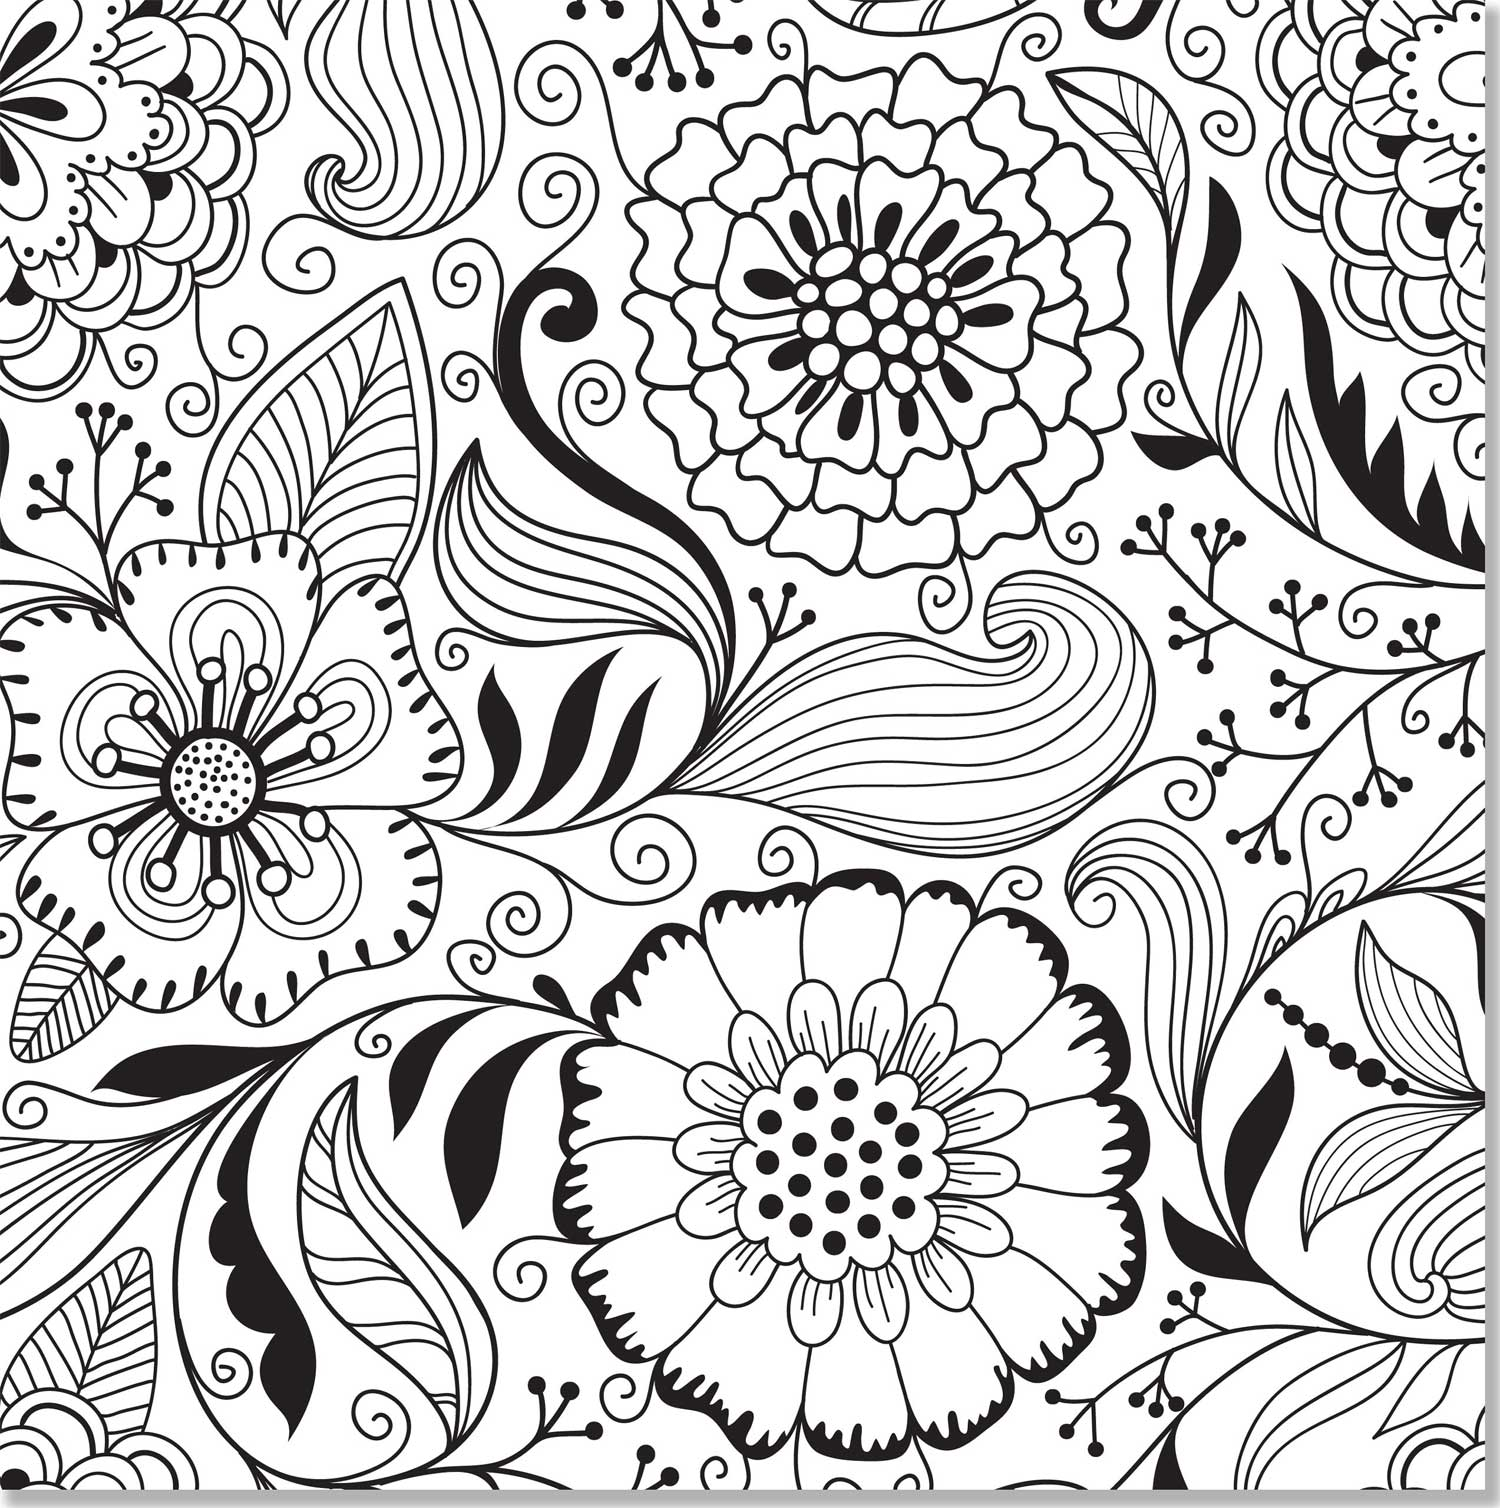 Coloring pictures free printable adult - Free Coloring Pages For Adults To Print Image 6 Voteforverde Com